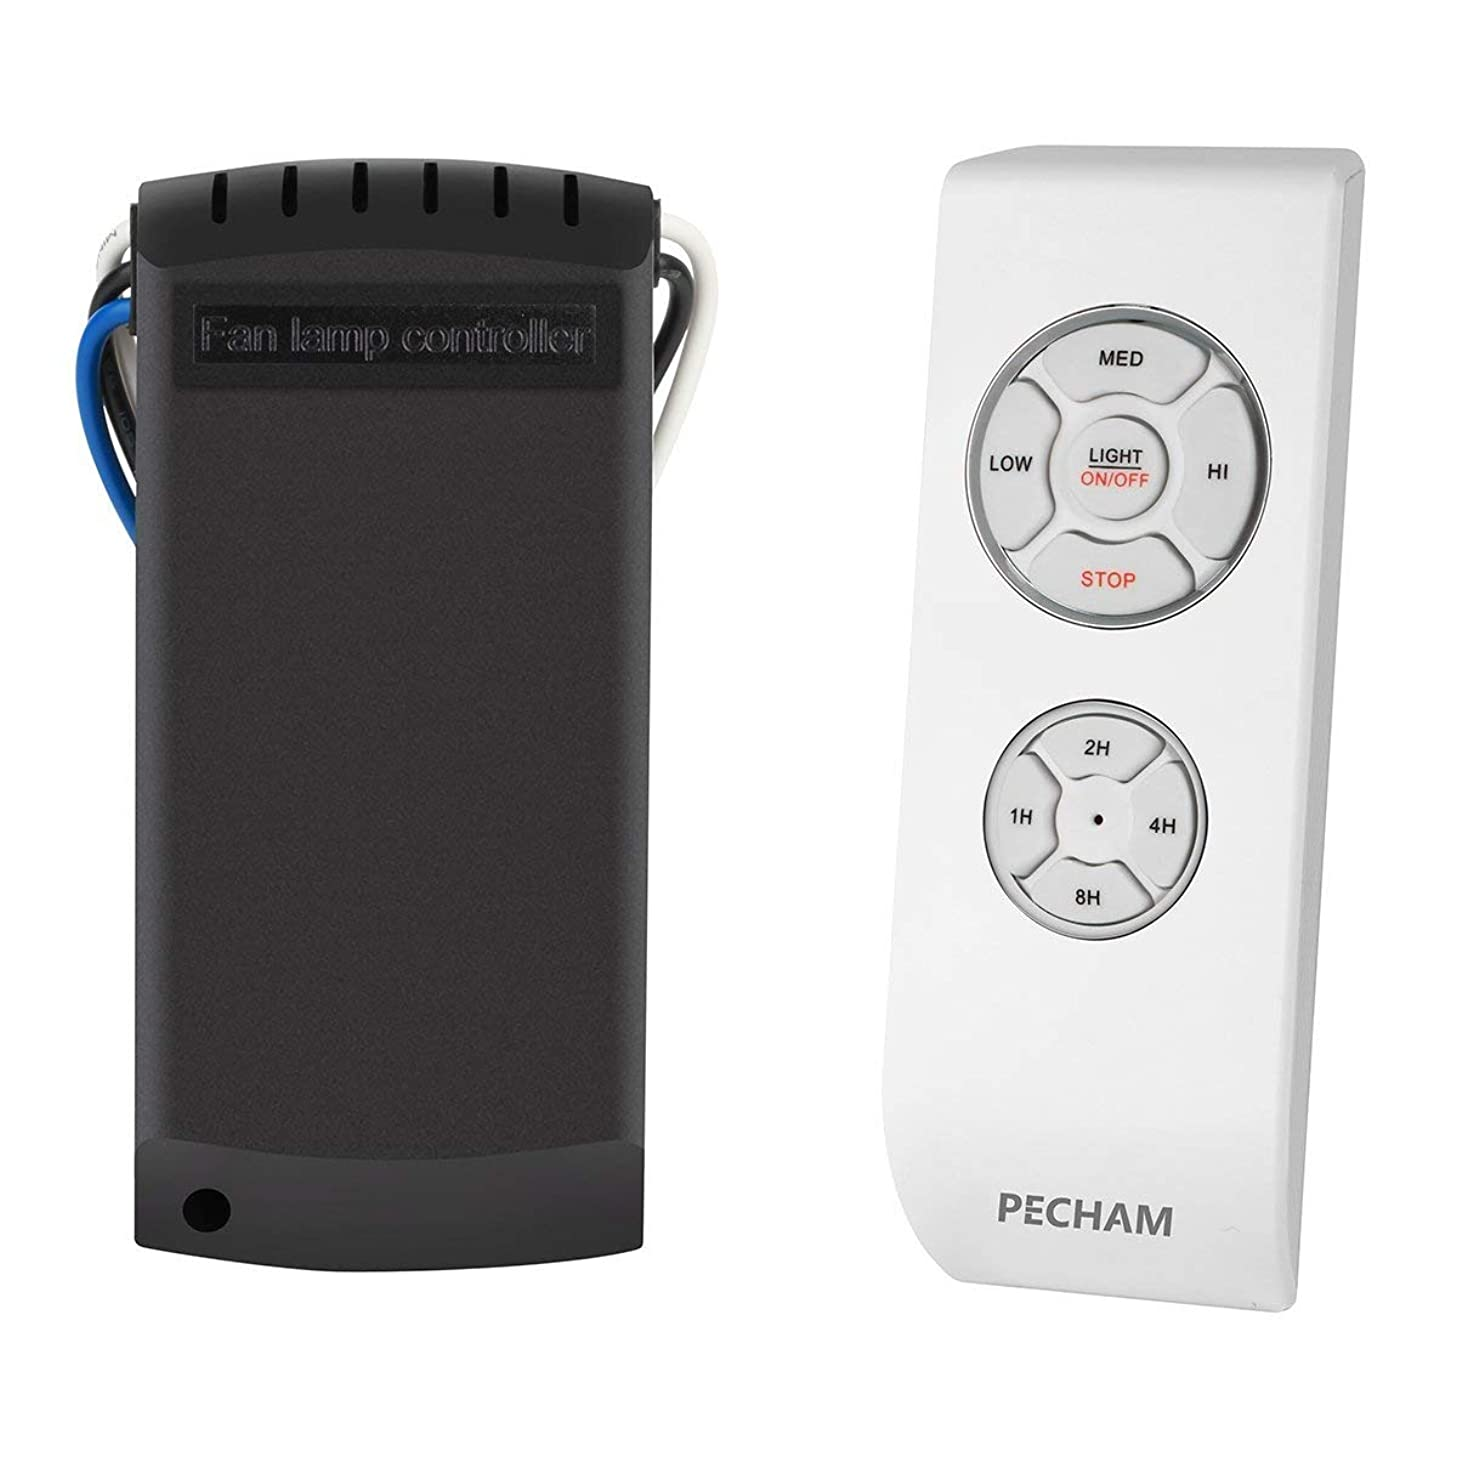 PECHAM Universal Lamp Kit & Timing Wireless Remote Control for Ceiling Fan, Scope of Application [Home/Office/Hotel/The Club/Display Hall/Restaurant] kzfgfpkrz